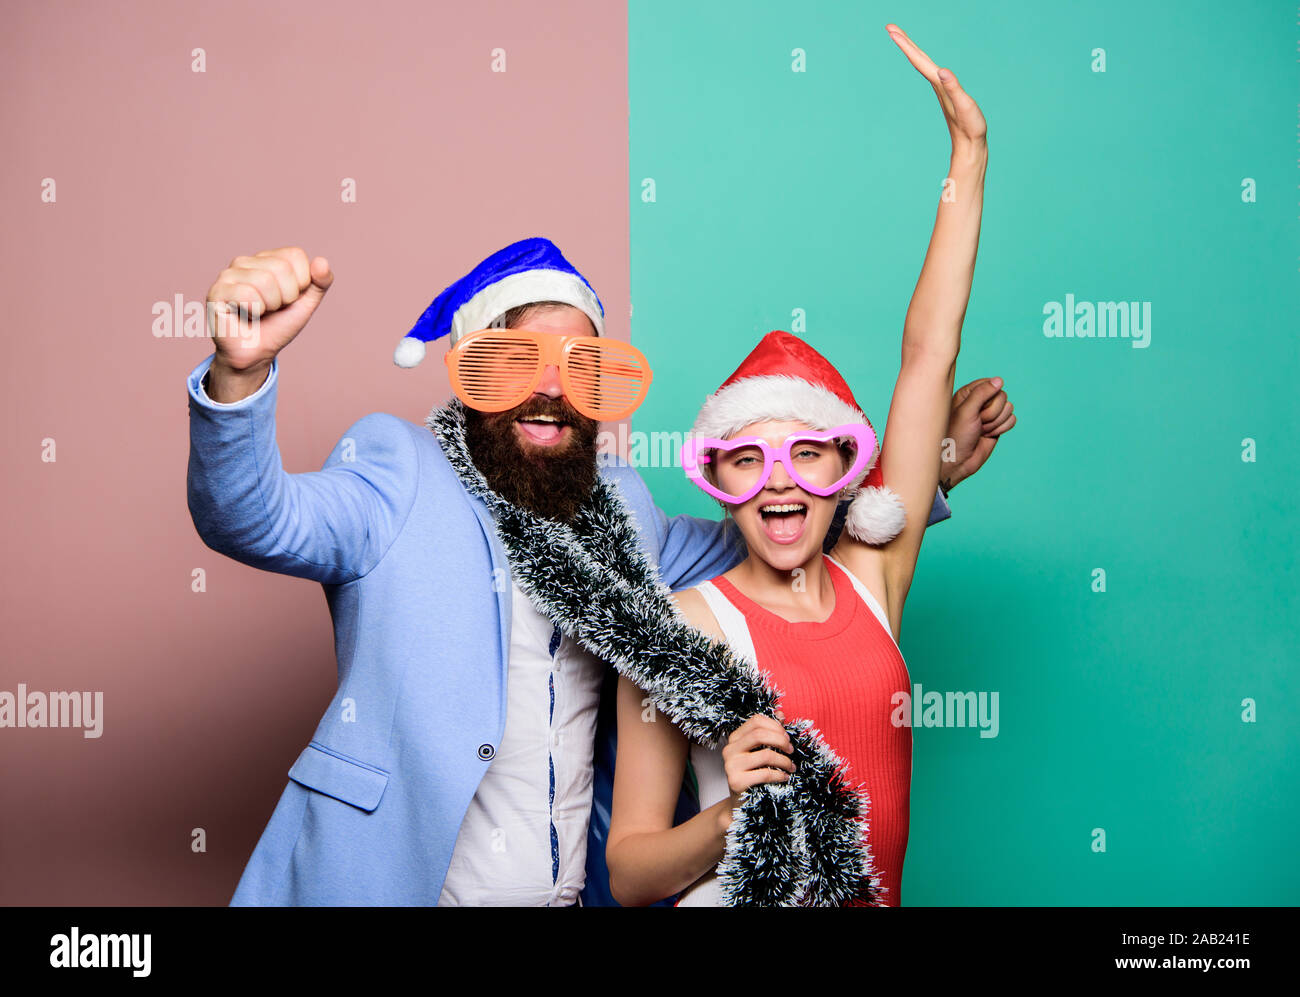 Funny Office Christmas Photo Ideas from c8.alamy.com